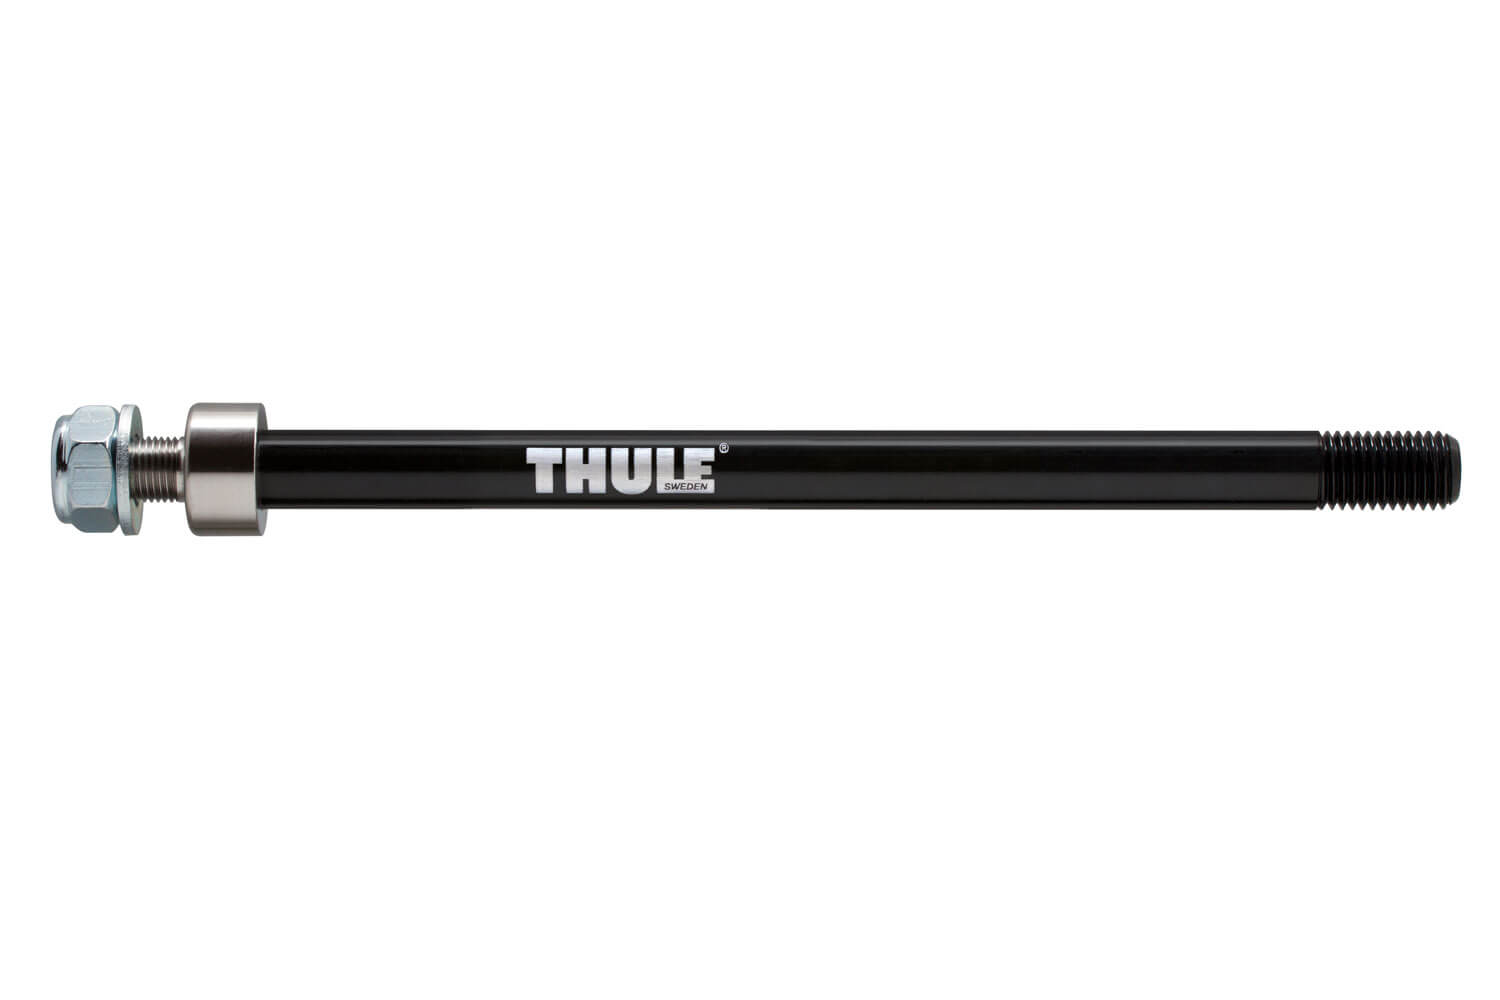 Thule Achsadapter Syntace M12X1.0 160-172mm